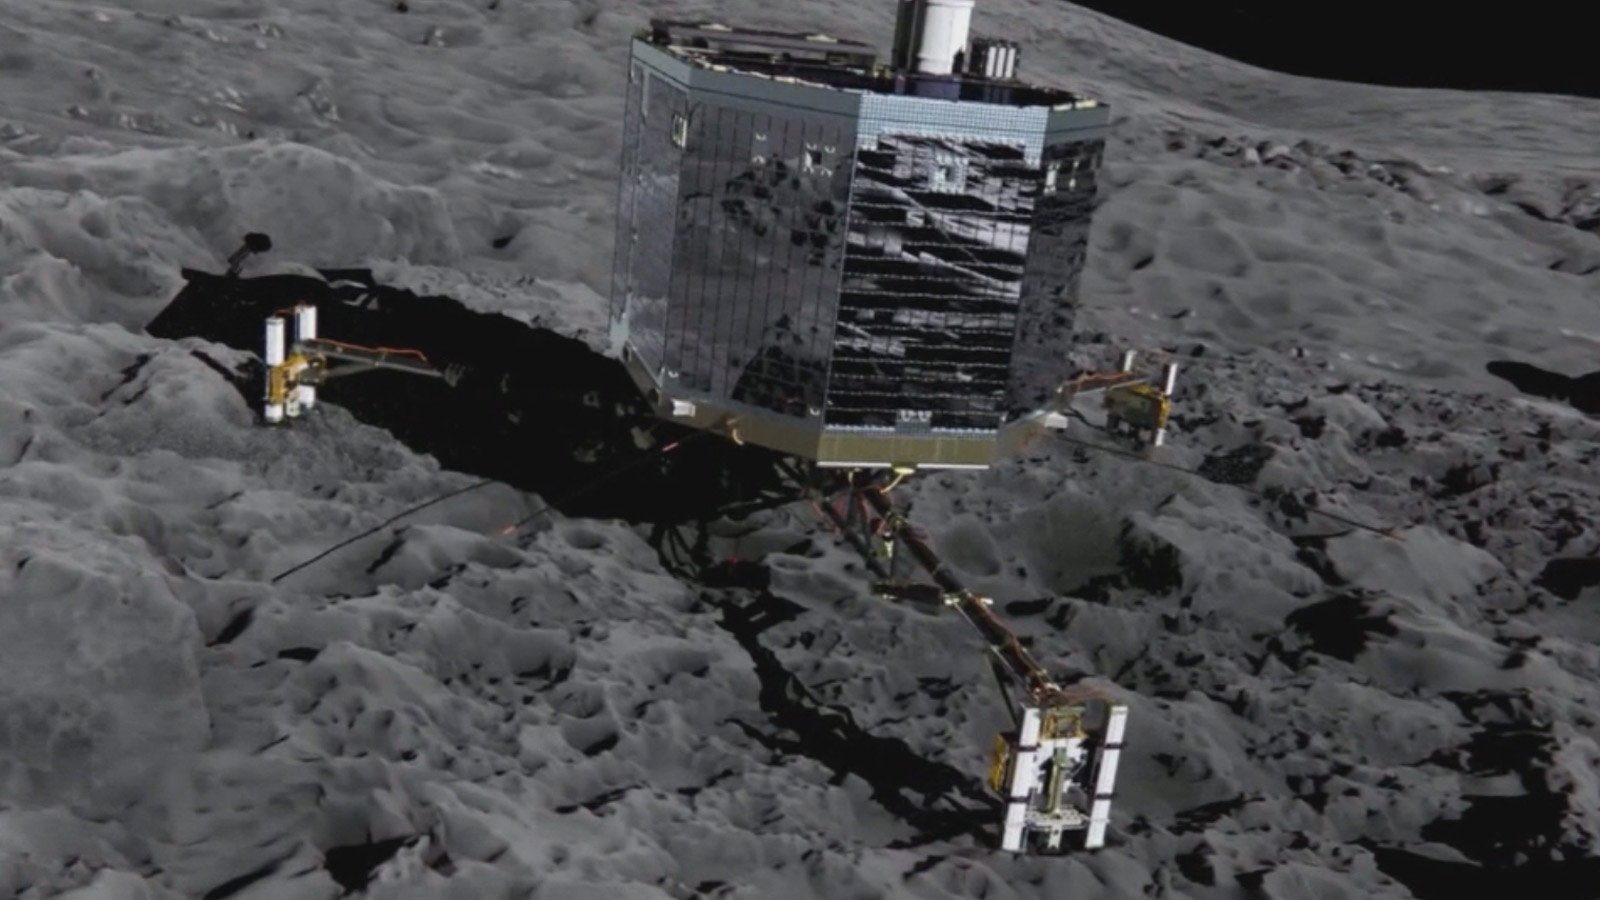 The Rosetta spaceship attached to a comet (credit: European Space Agency)